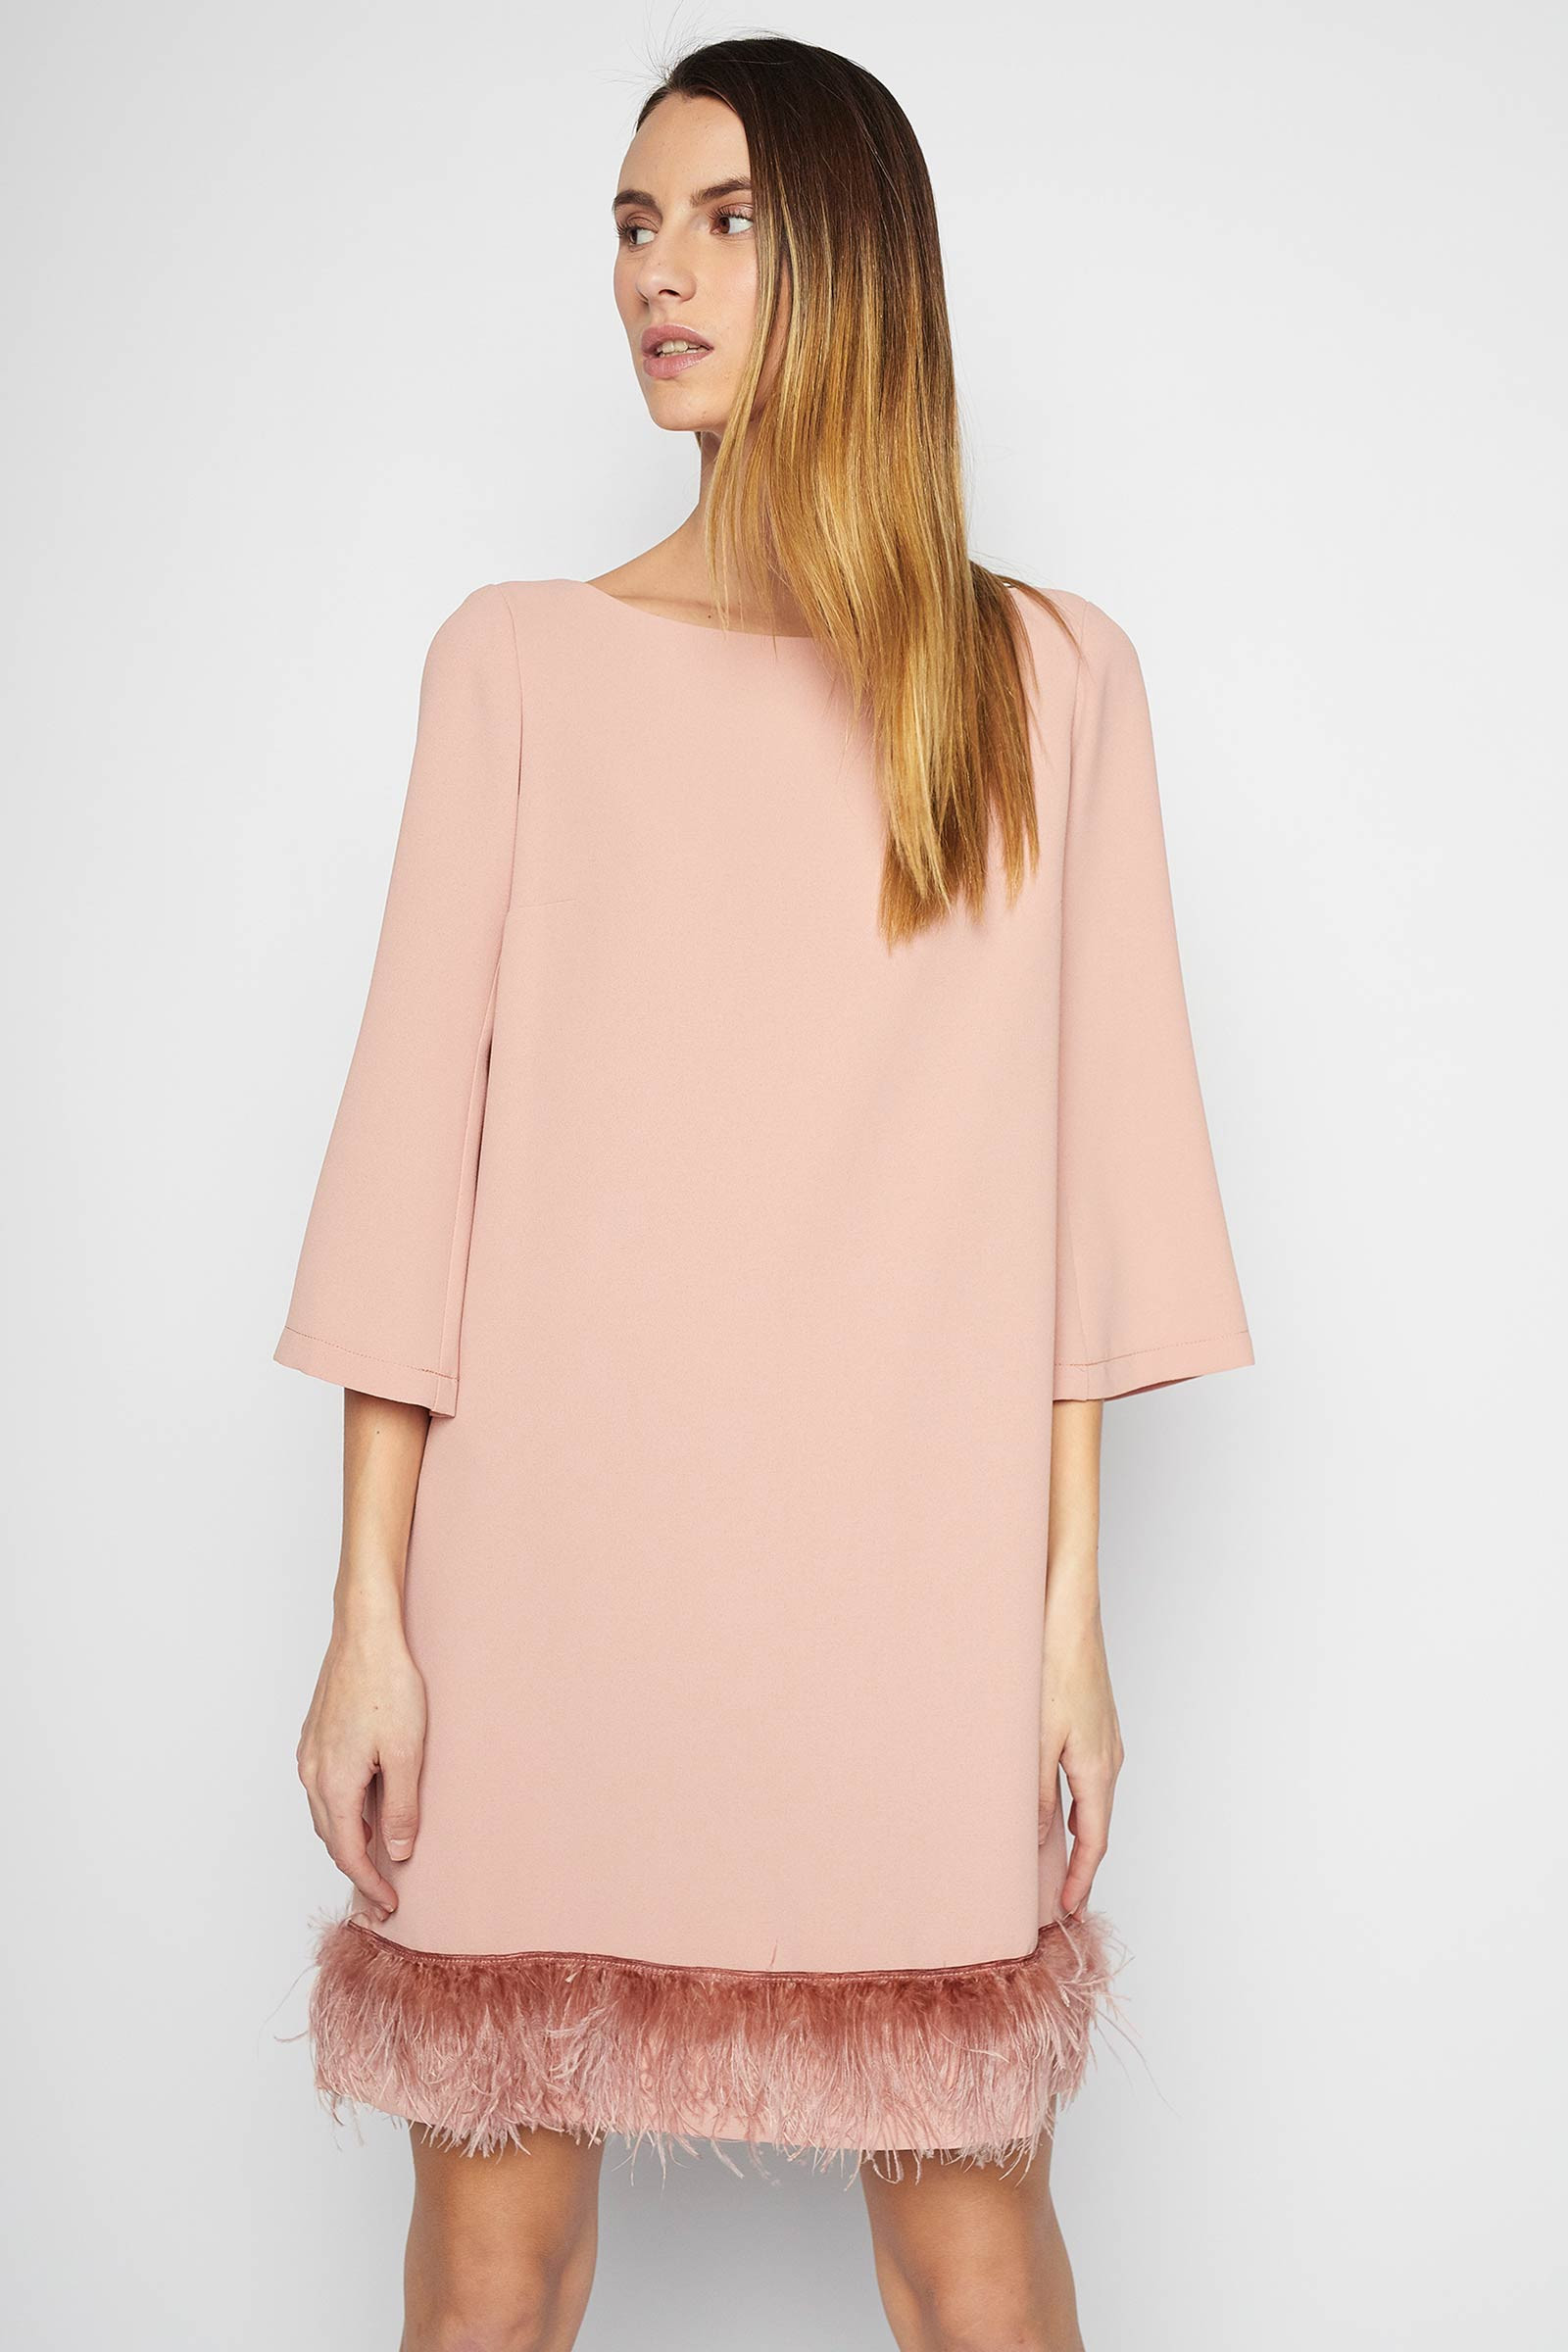 Pink Narciso Dress Elisa Rivera